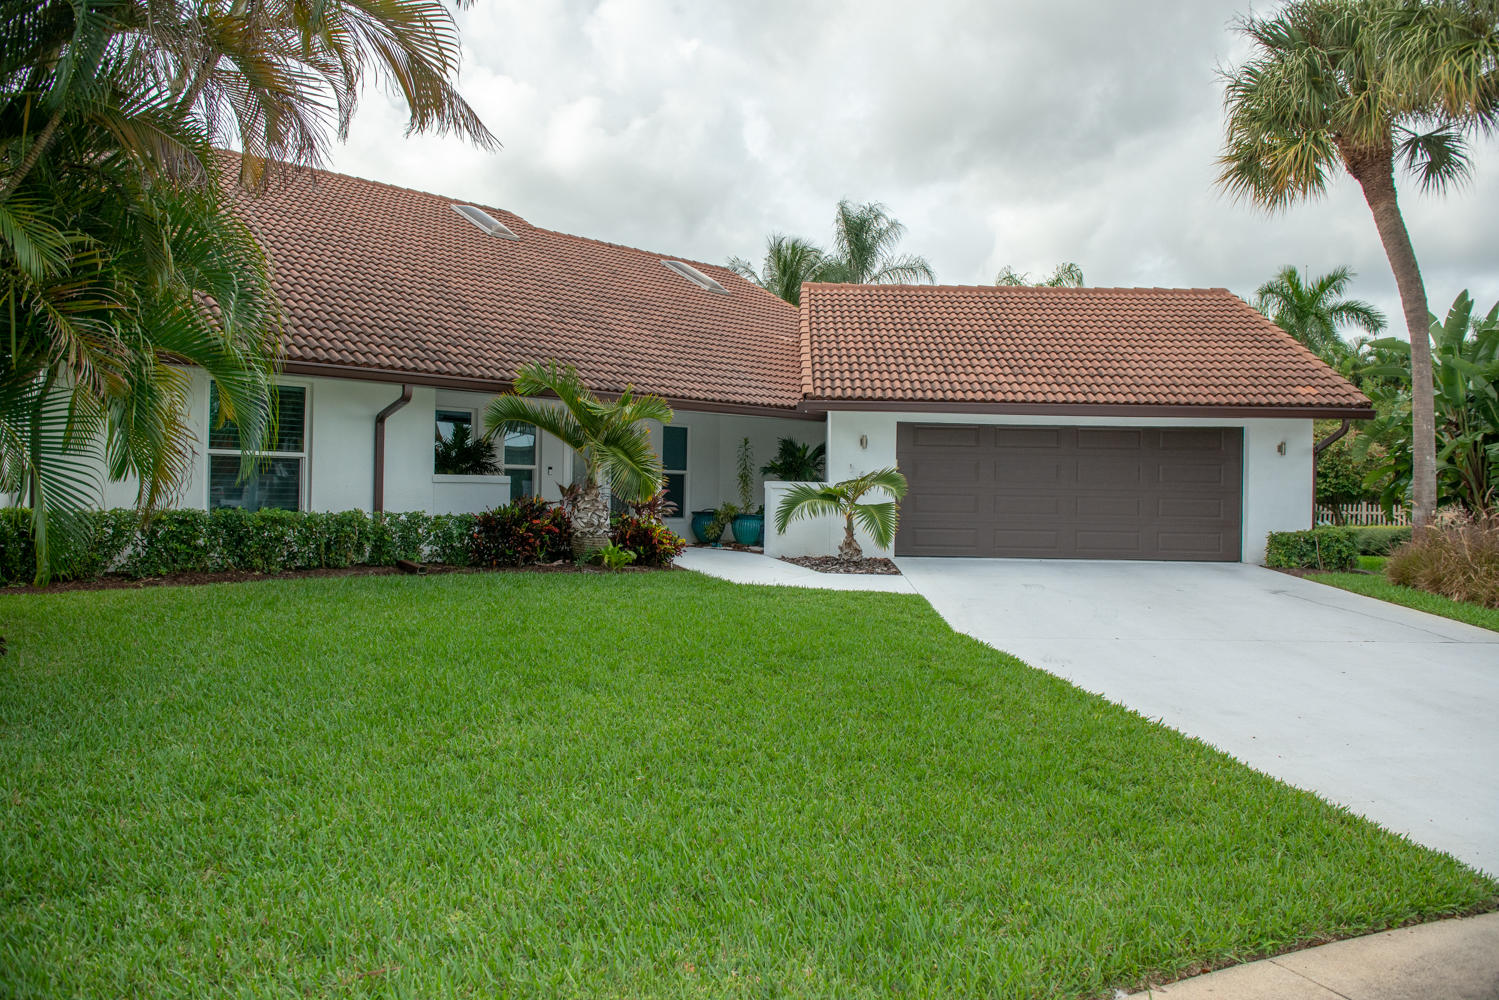 New Home for sale at 141 Pine Hill Trail in Tequesta